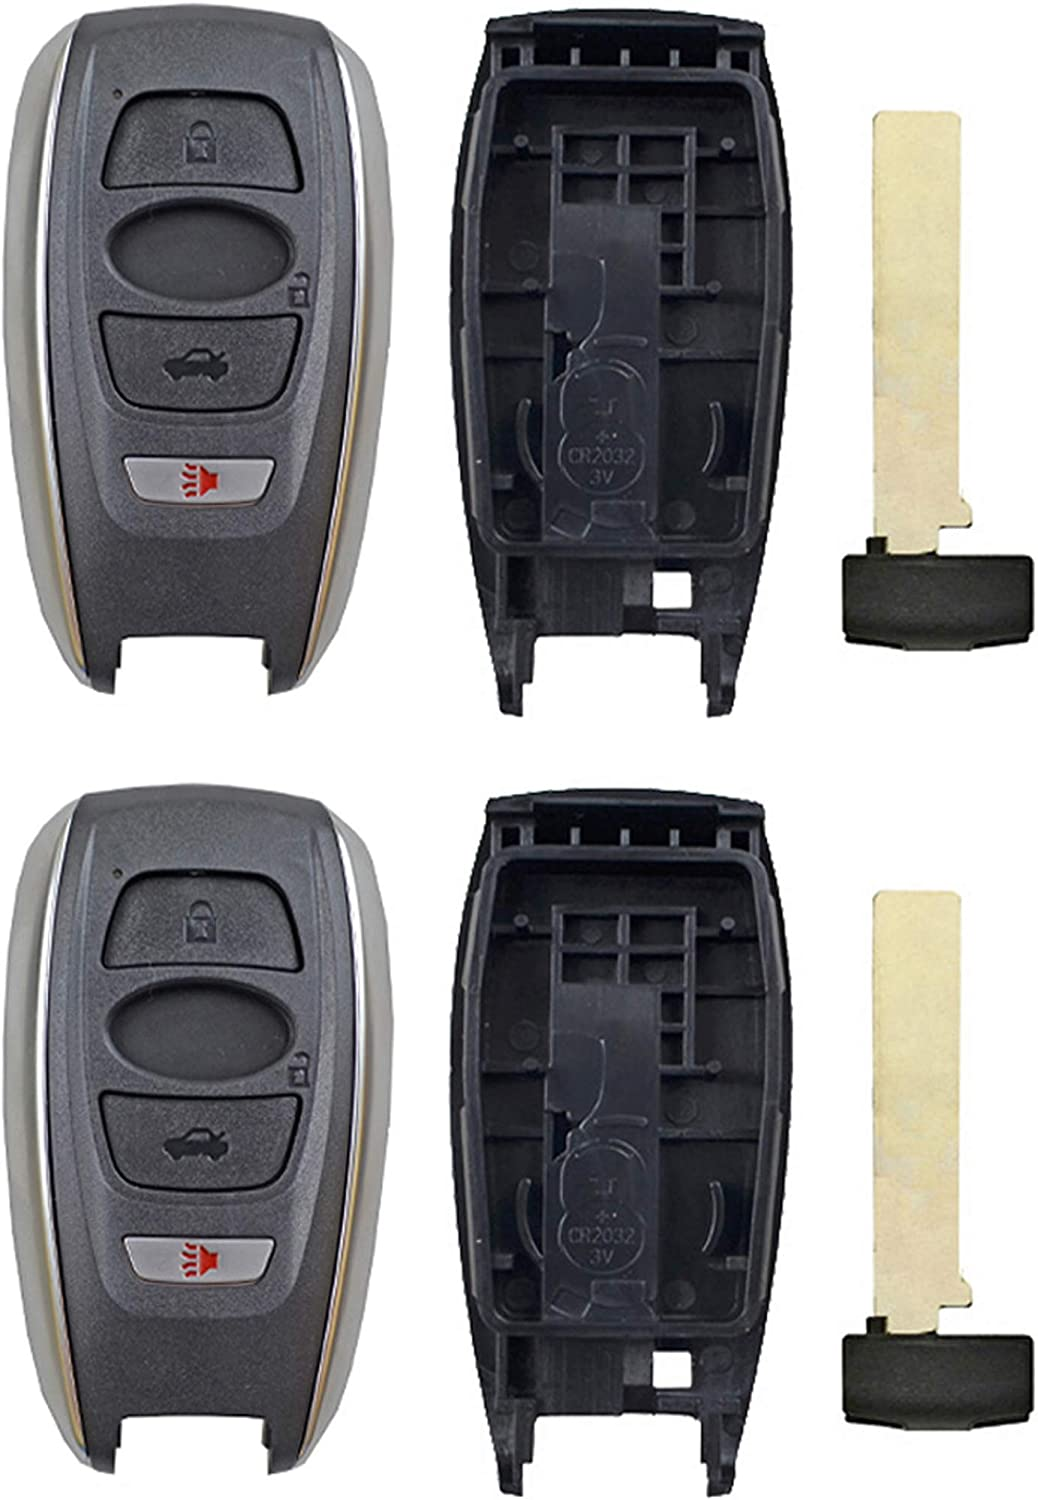 QualityKeylessPlus Replacement Remote Case 4 Button Pad Uncut Insert Key Blade For Subaru HYQ14AHC HYQ14AHK 1